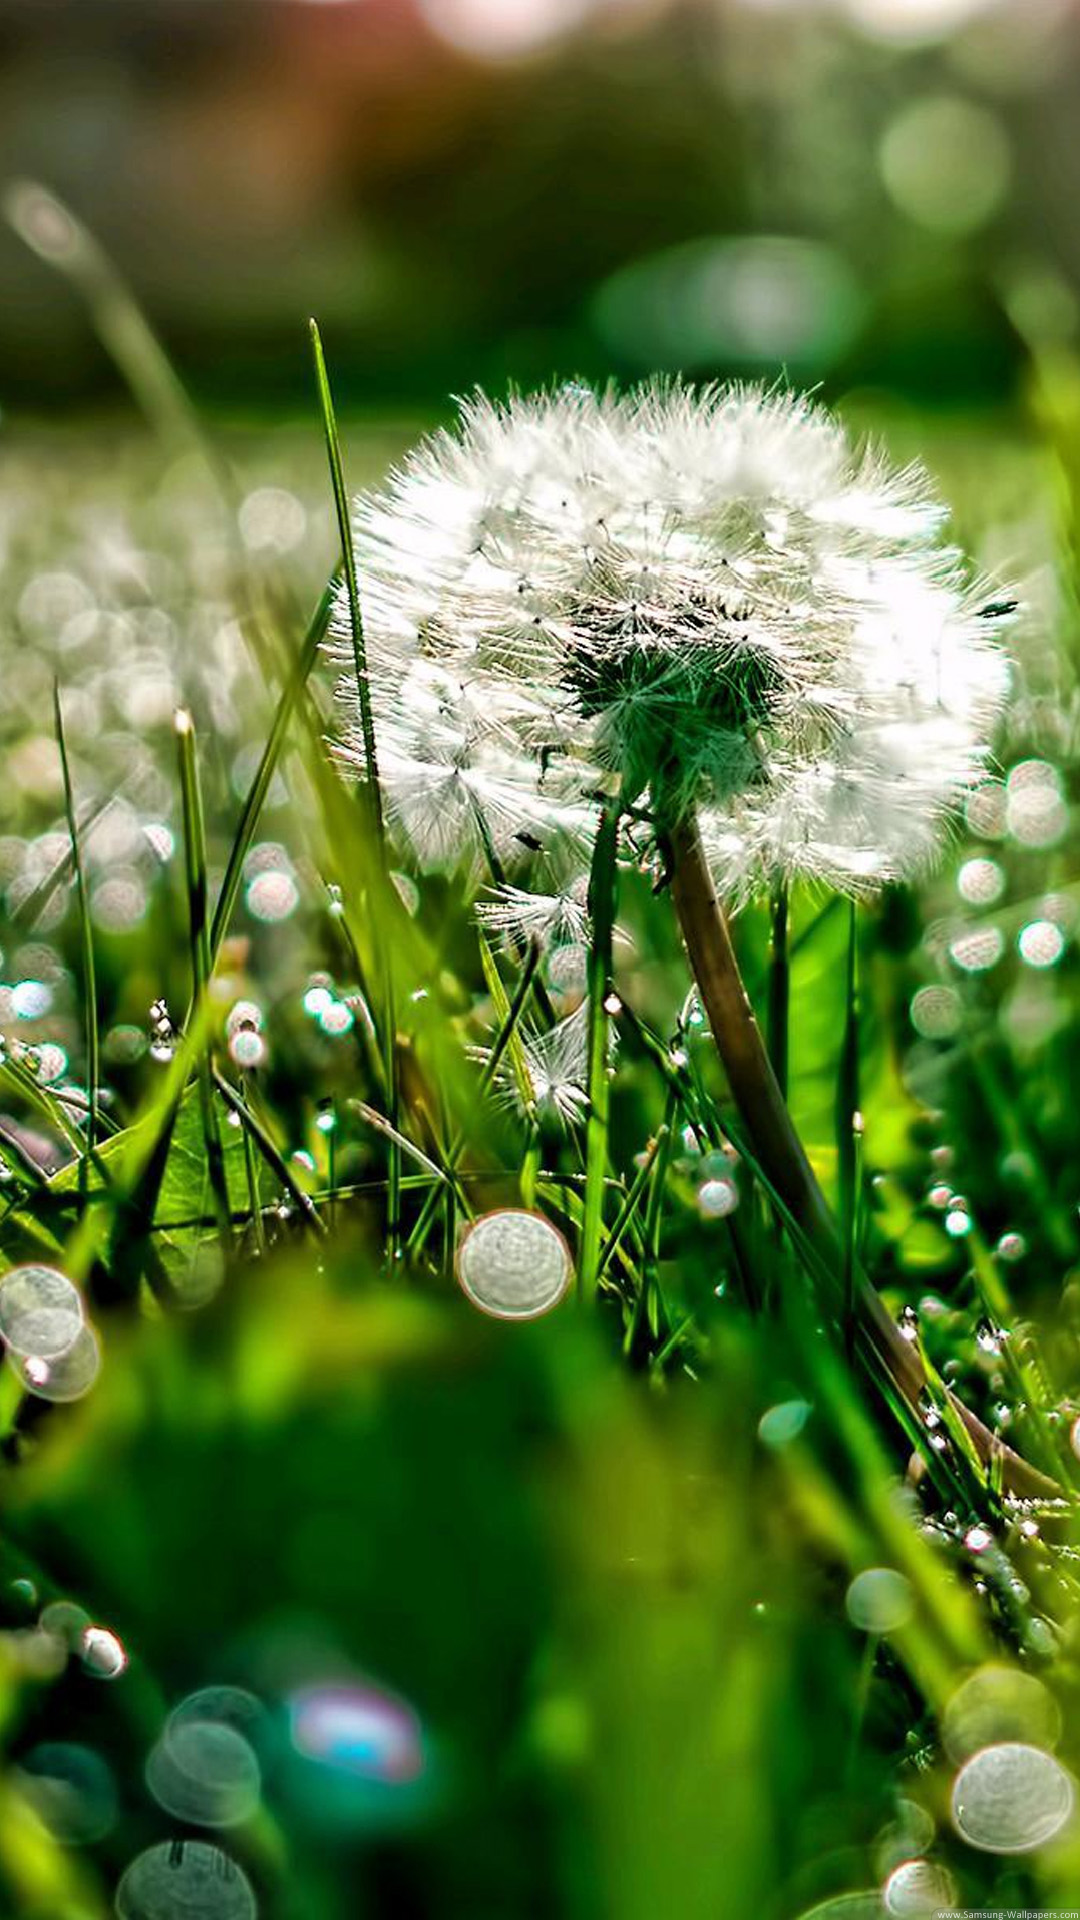 Dandelion HD Lock Screen 1080x1920 Samsung Galaxy Note 3 Wallpaper 1080x1920